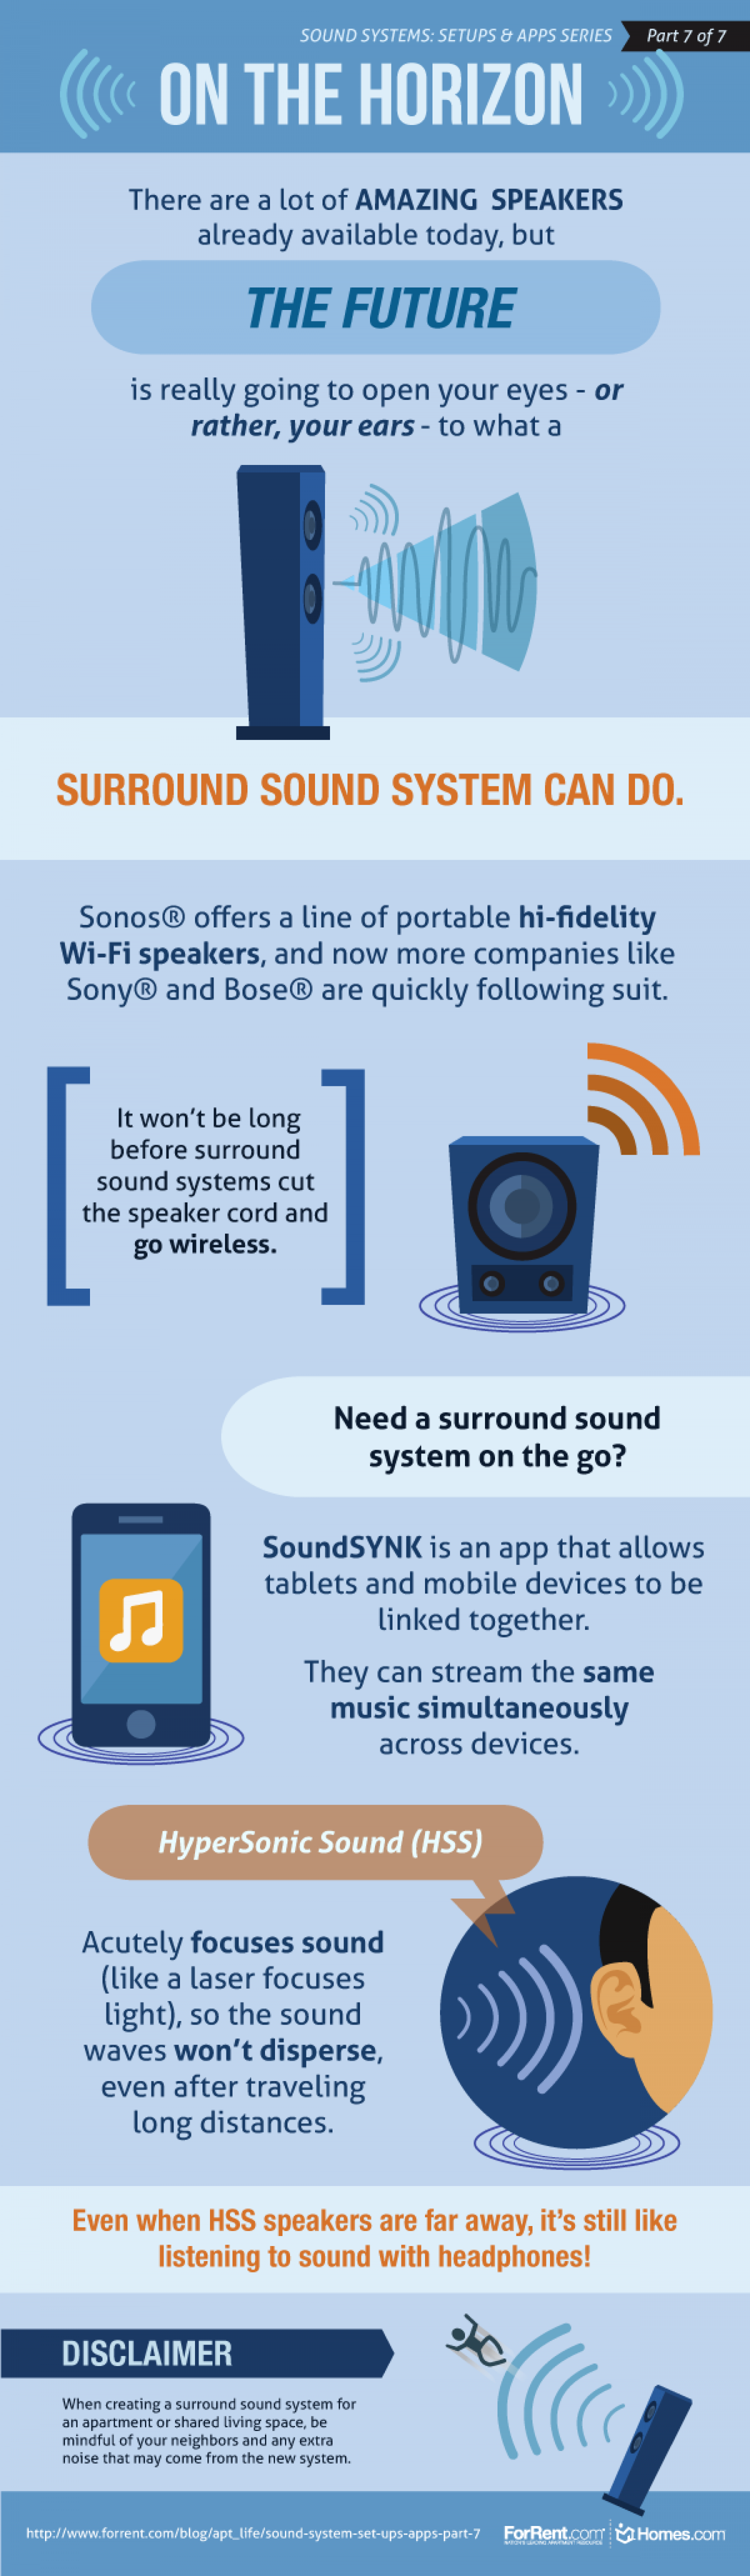 Sound System Set Ups & Apps – Part 7 Infographic